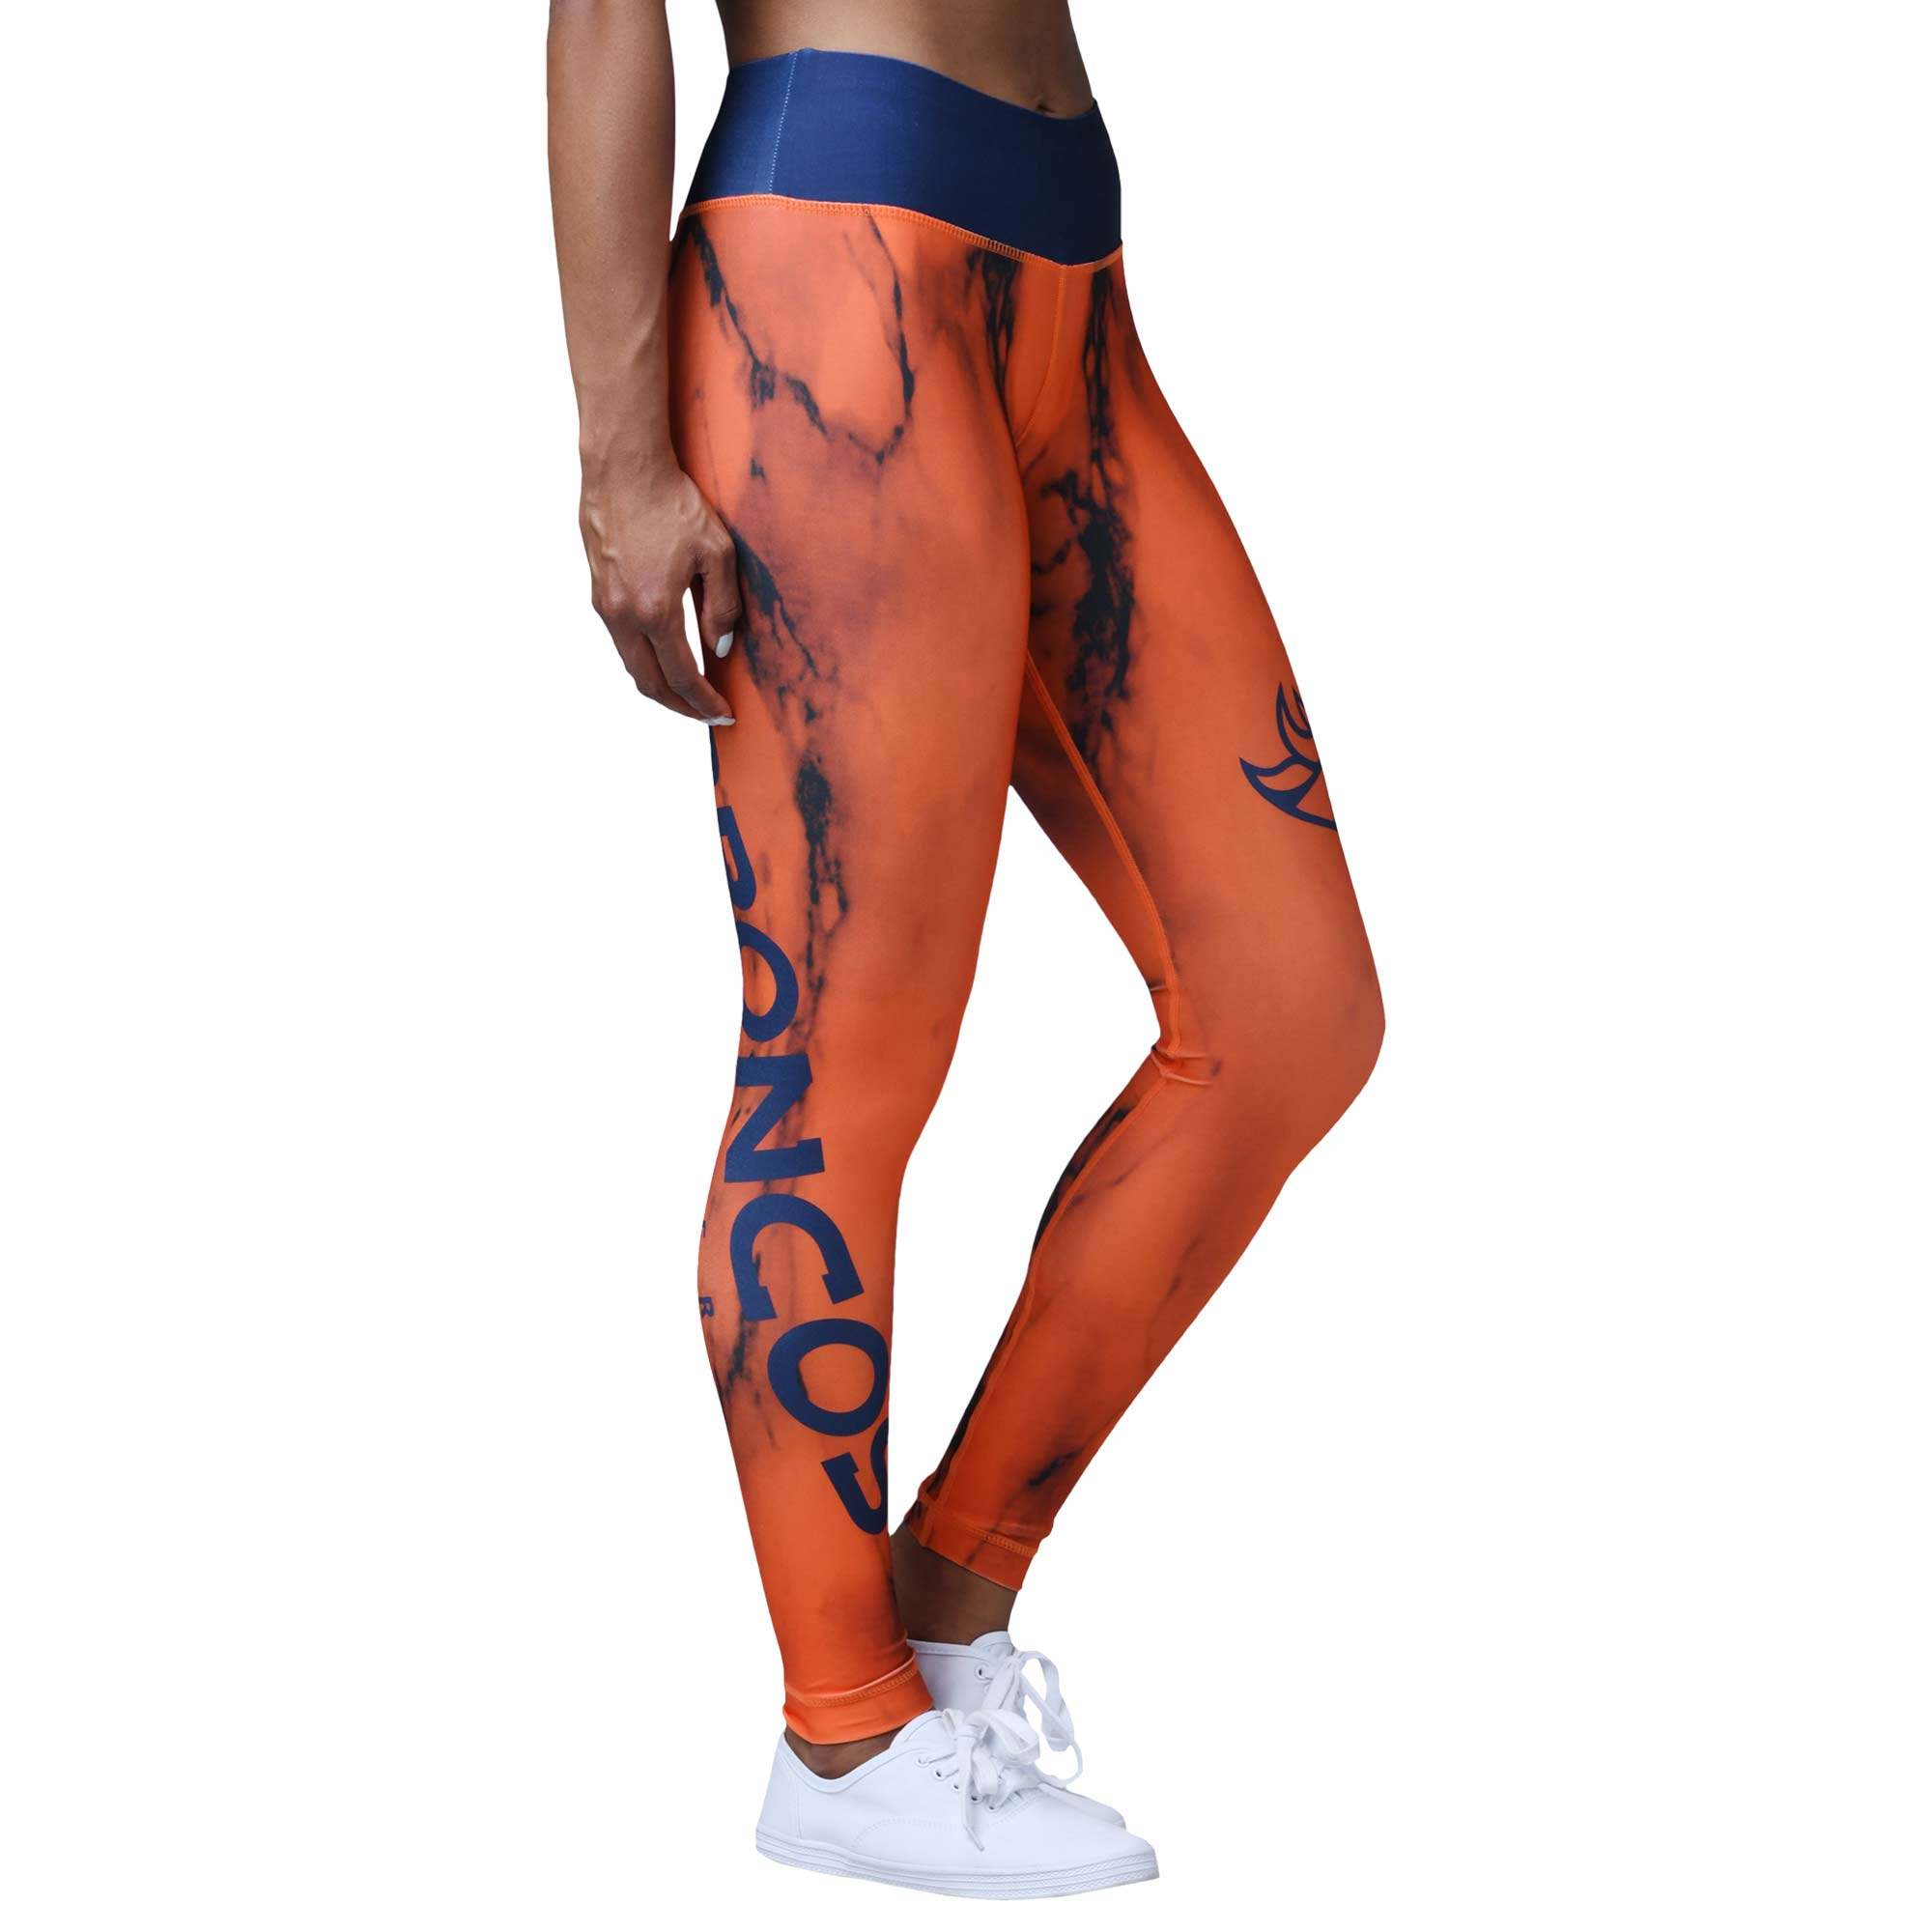 Denver Broncos Women's Team Color Marble Wordmark Leggings - Orange